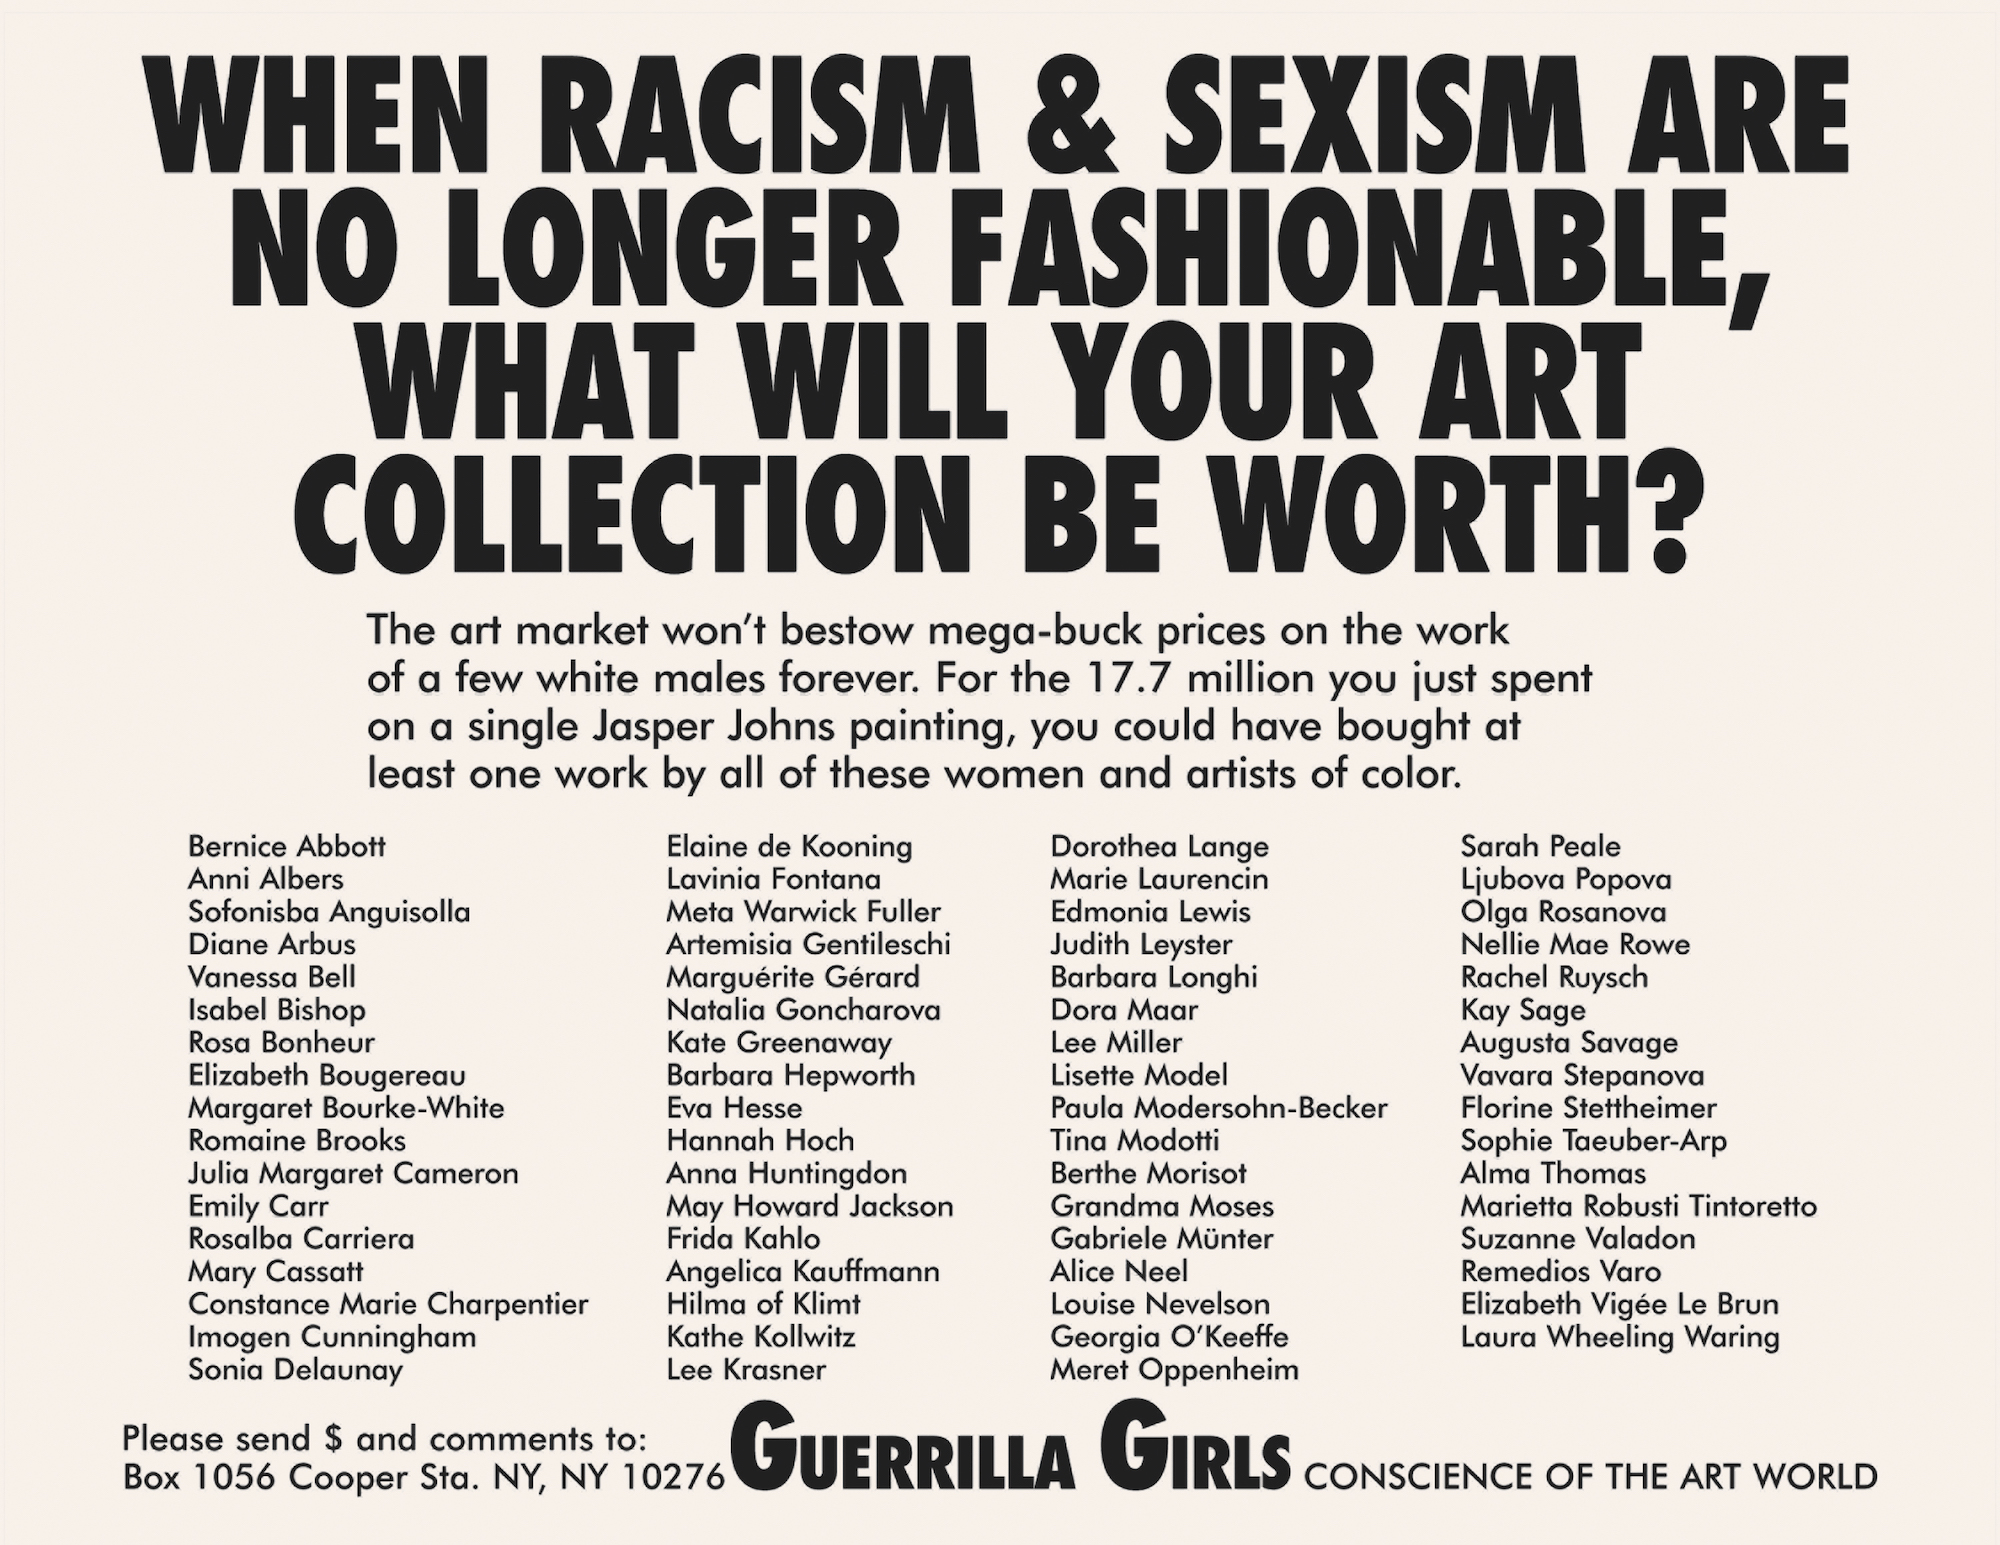 Guerrilla Girls, When Racism & Sexism Are No Longer Fashionable, What Will Your Art Collection Be Worth? 1989 © Guerrilla Girls. Courtesy guerrillagirls.com